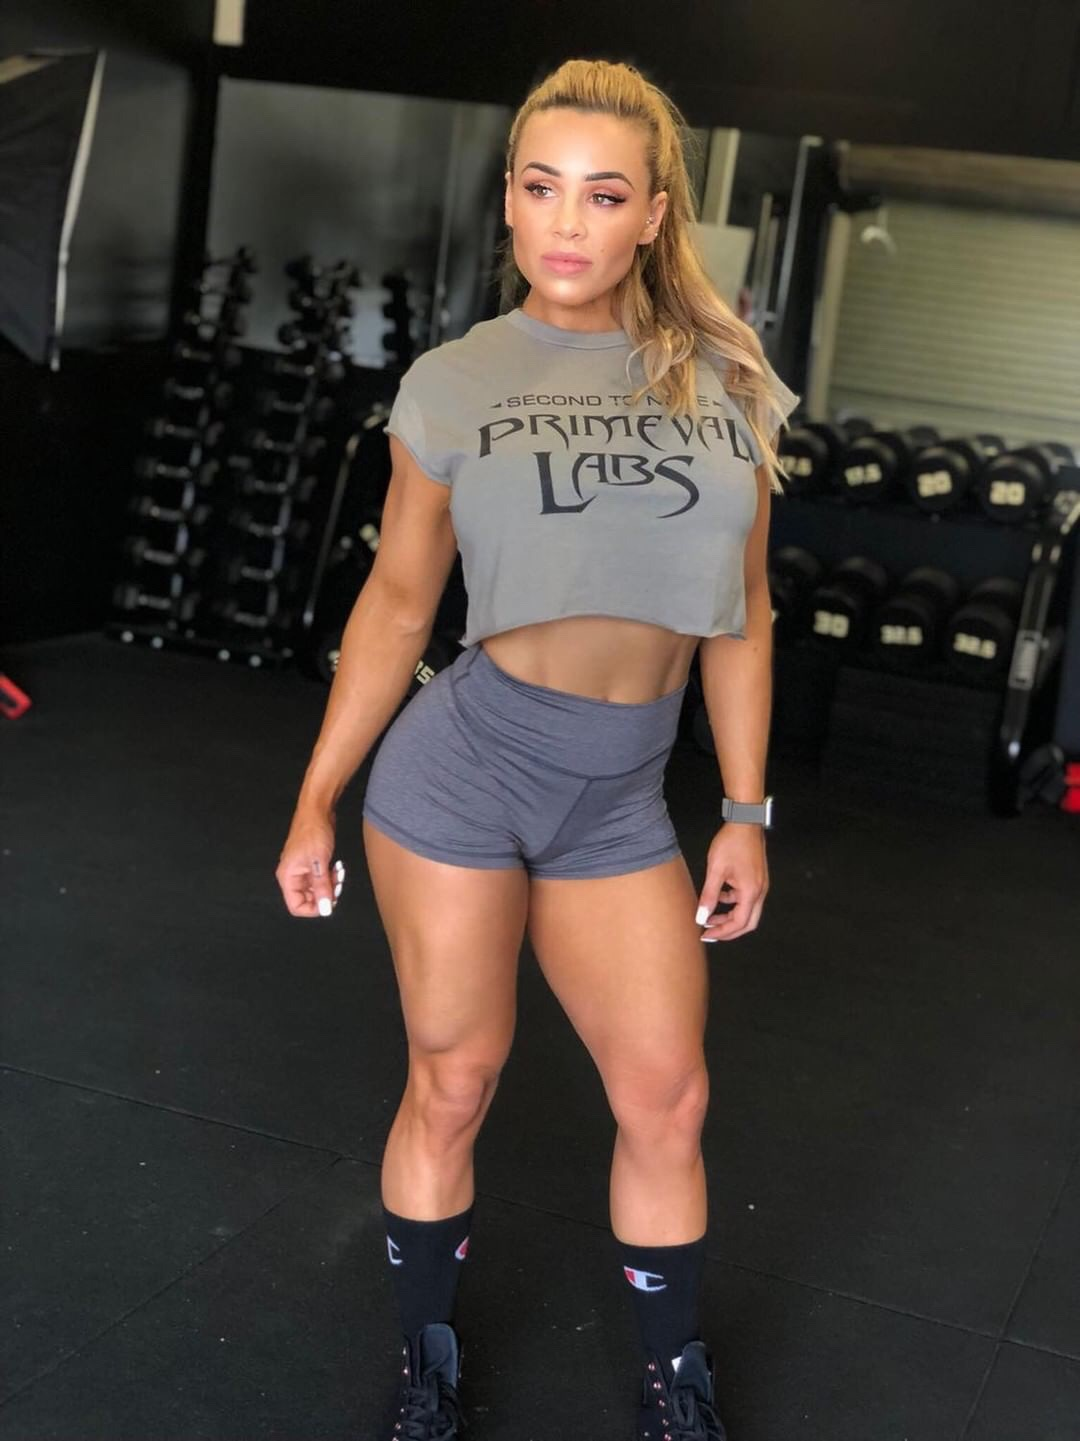 Workout Supplements | Workout Tips | Primeval Labs